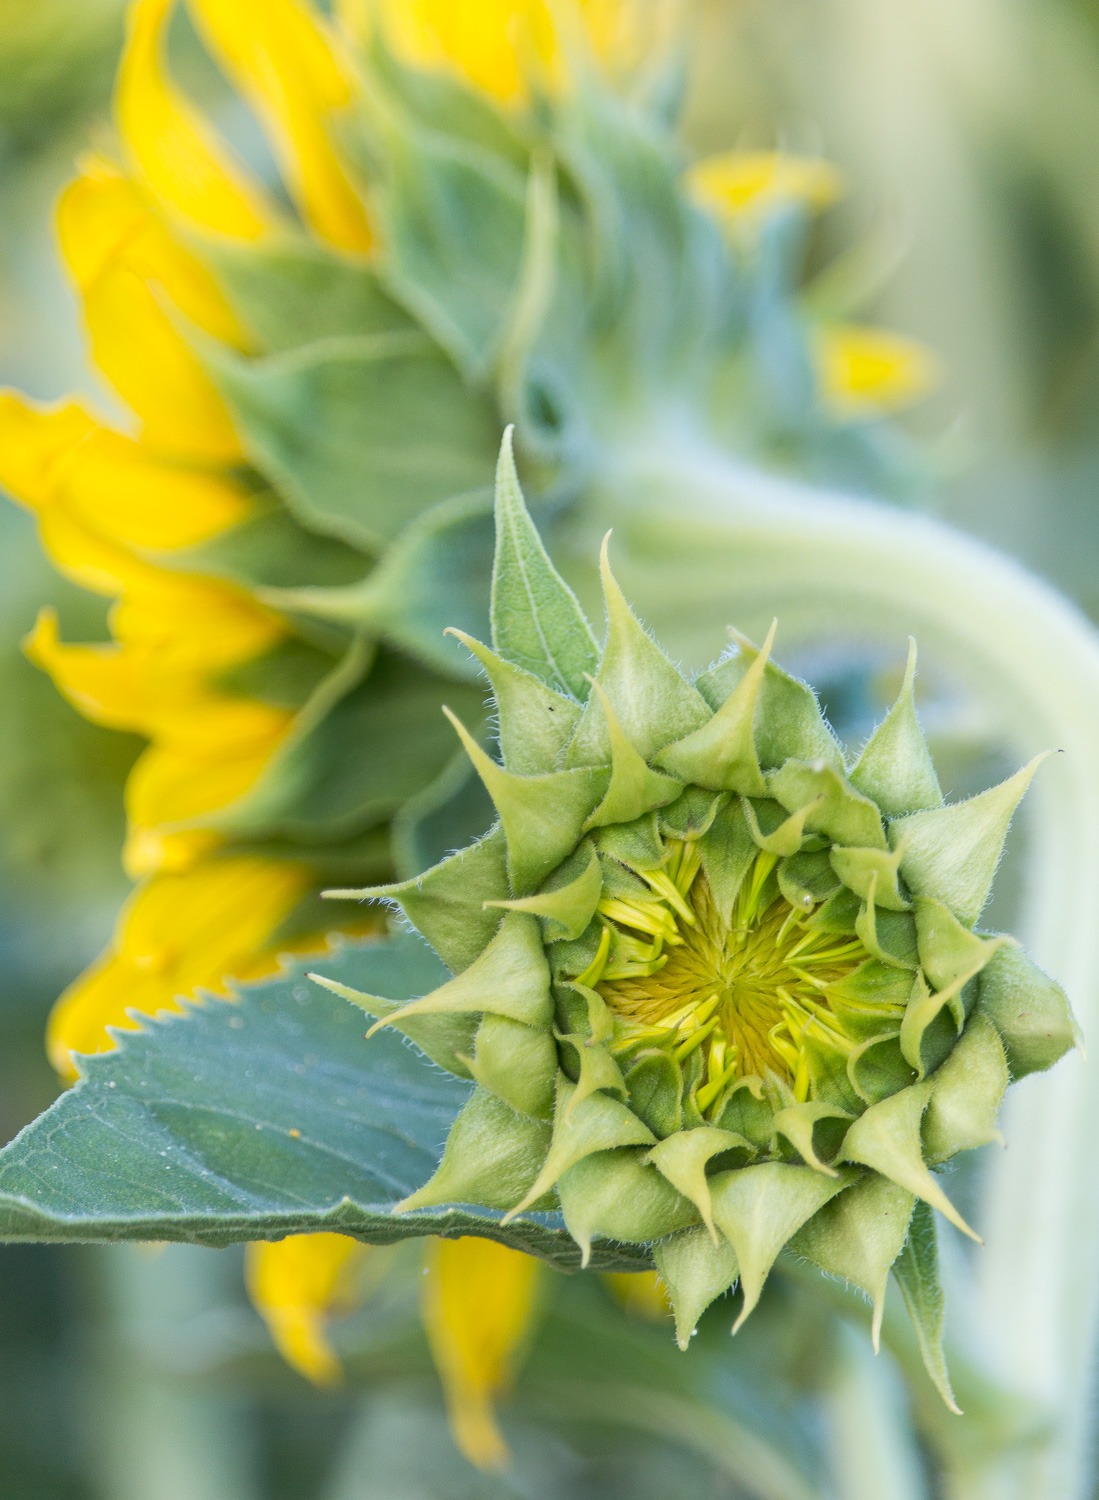 6_29_16 _sunflowers-4.jpg